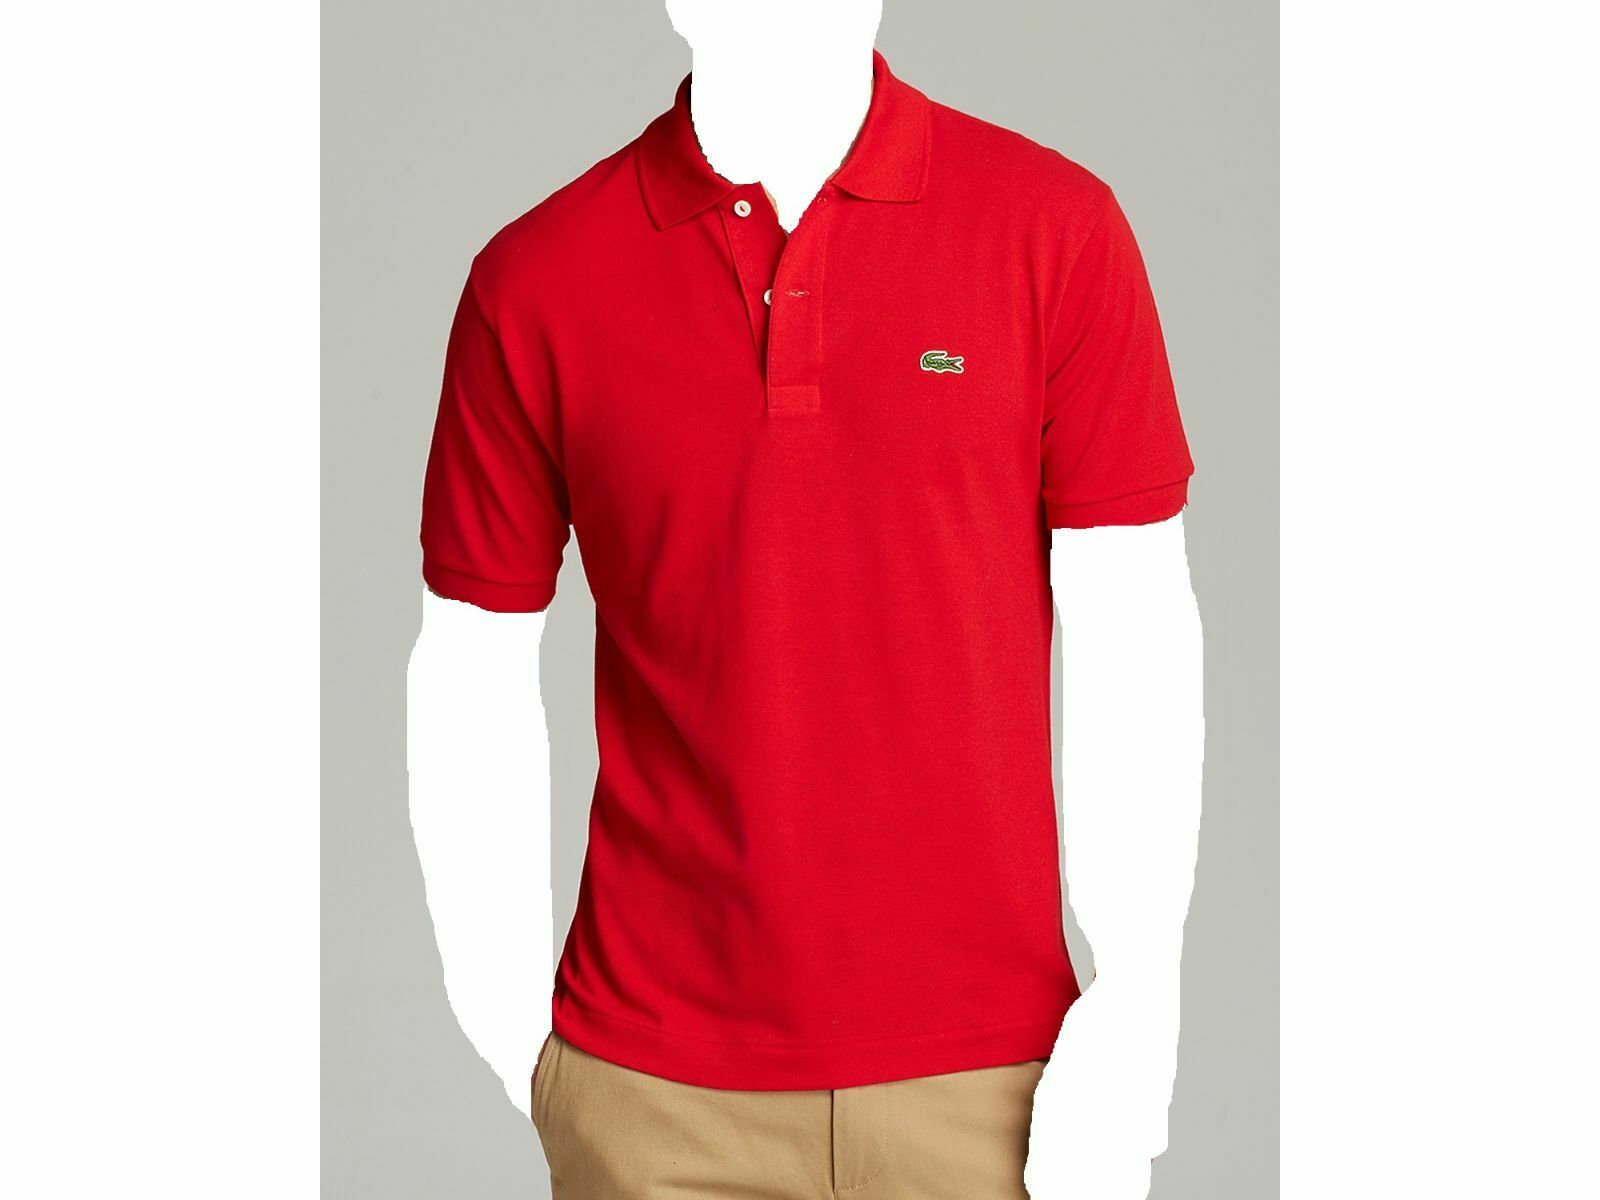 LACOSTE Men's CLASSIC FIT RED SHORT SLEEVE POLO BUTTON CROC LOGO SHIRT 3 S